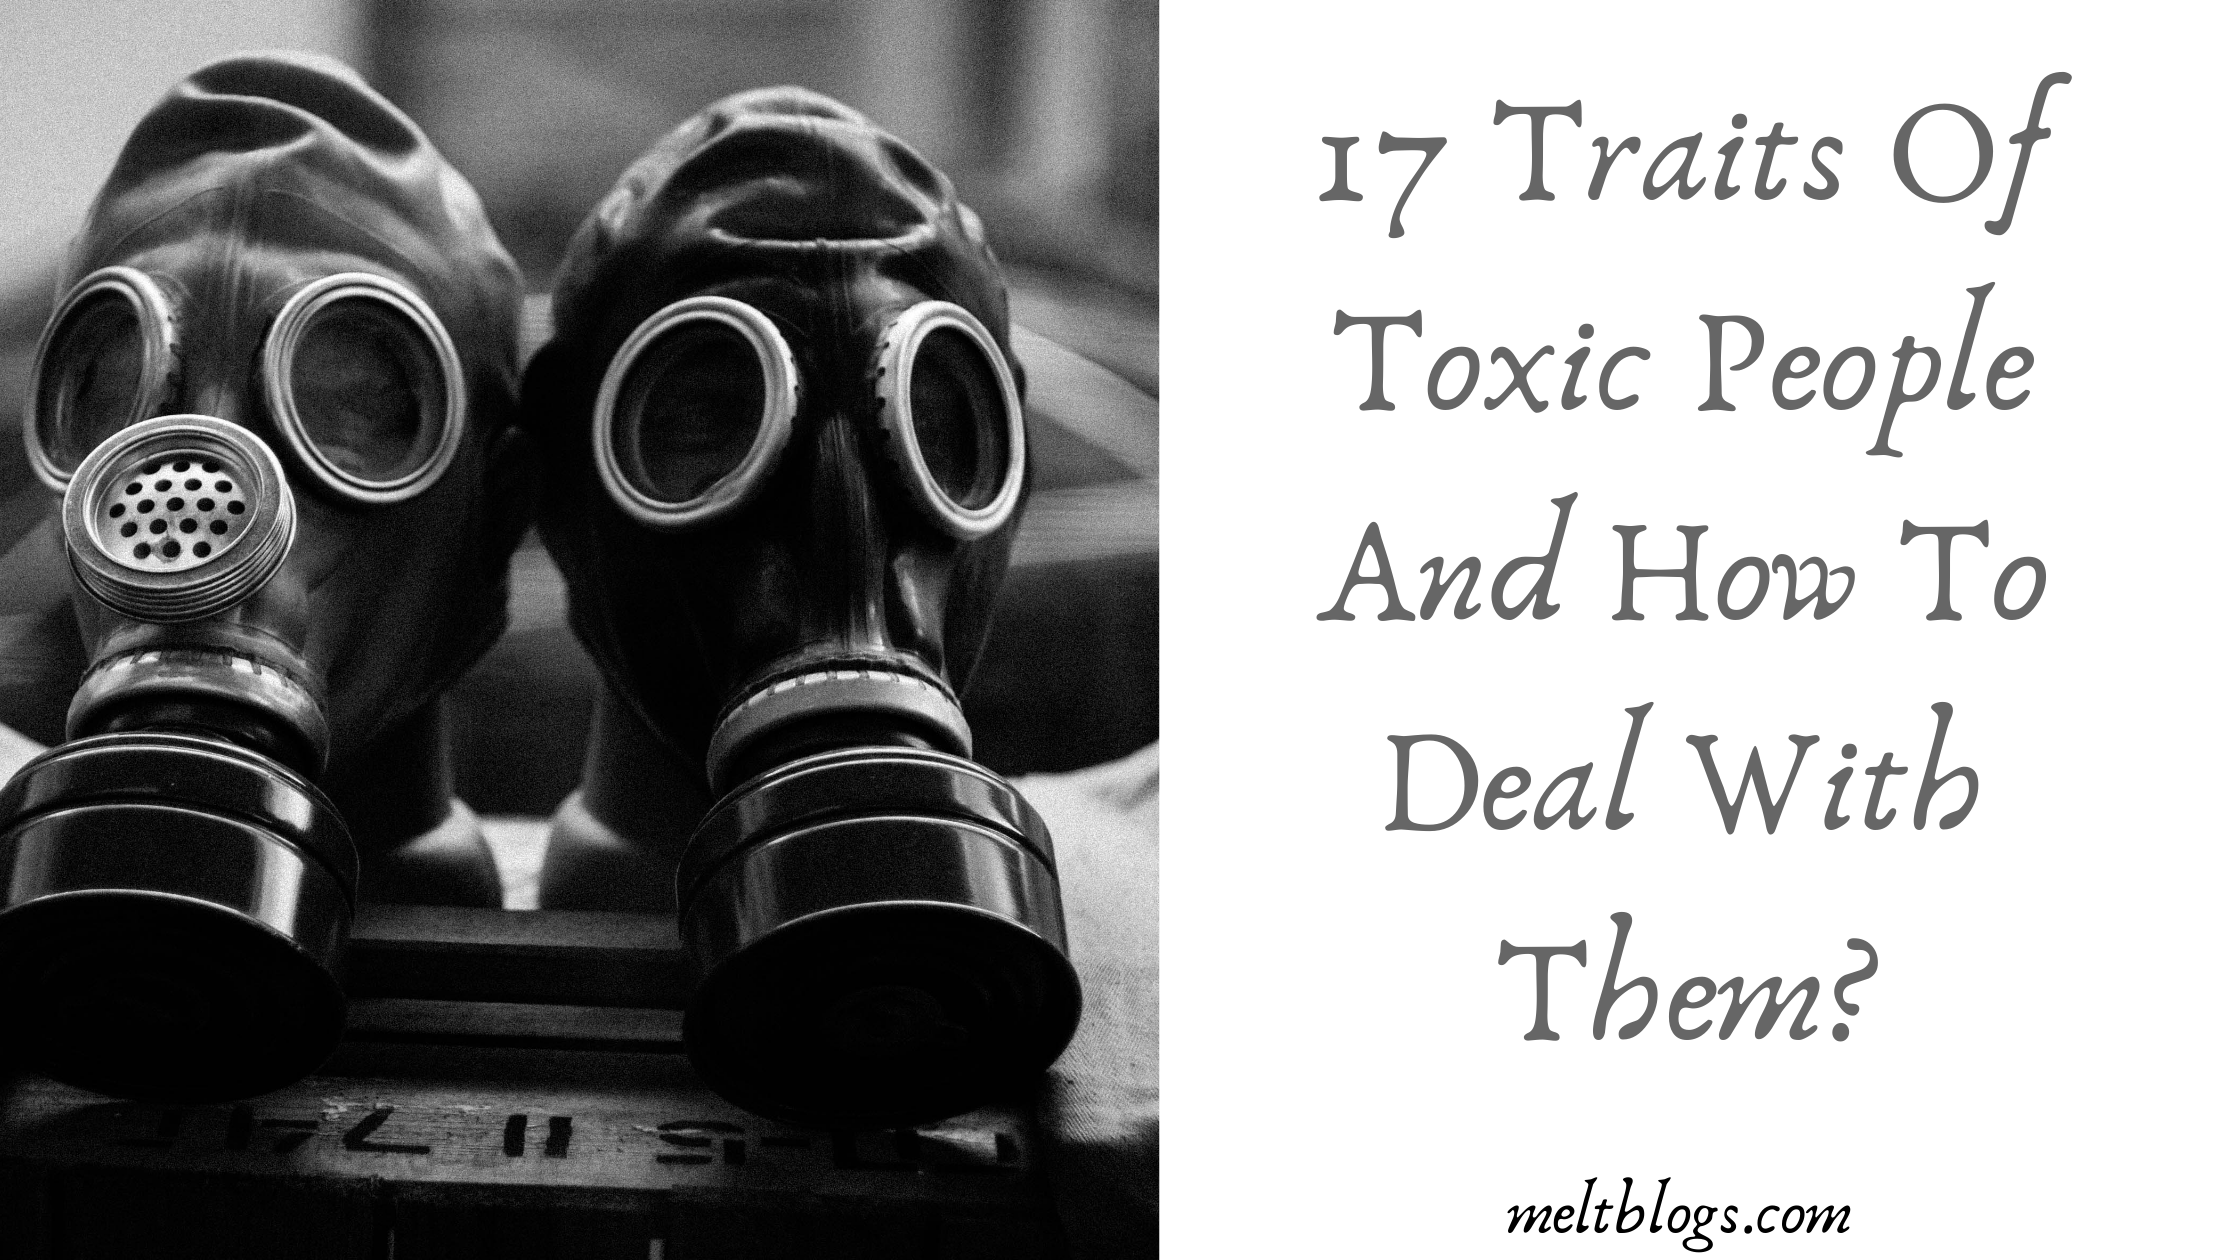 17 Traits Of Toxic People & How To Deal With Them?